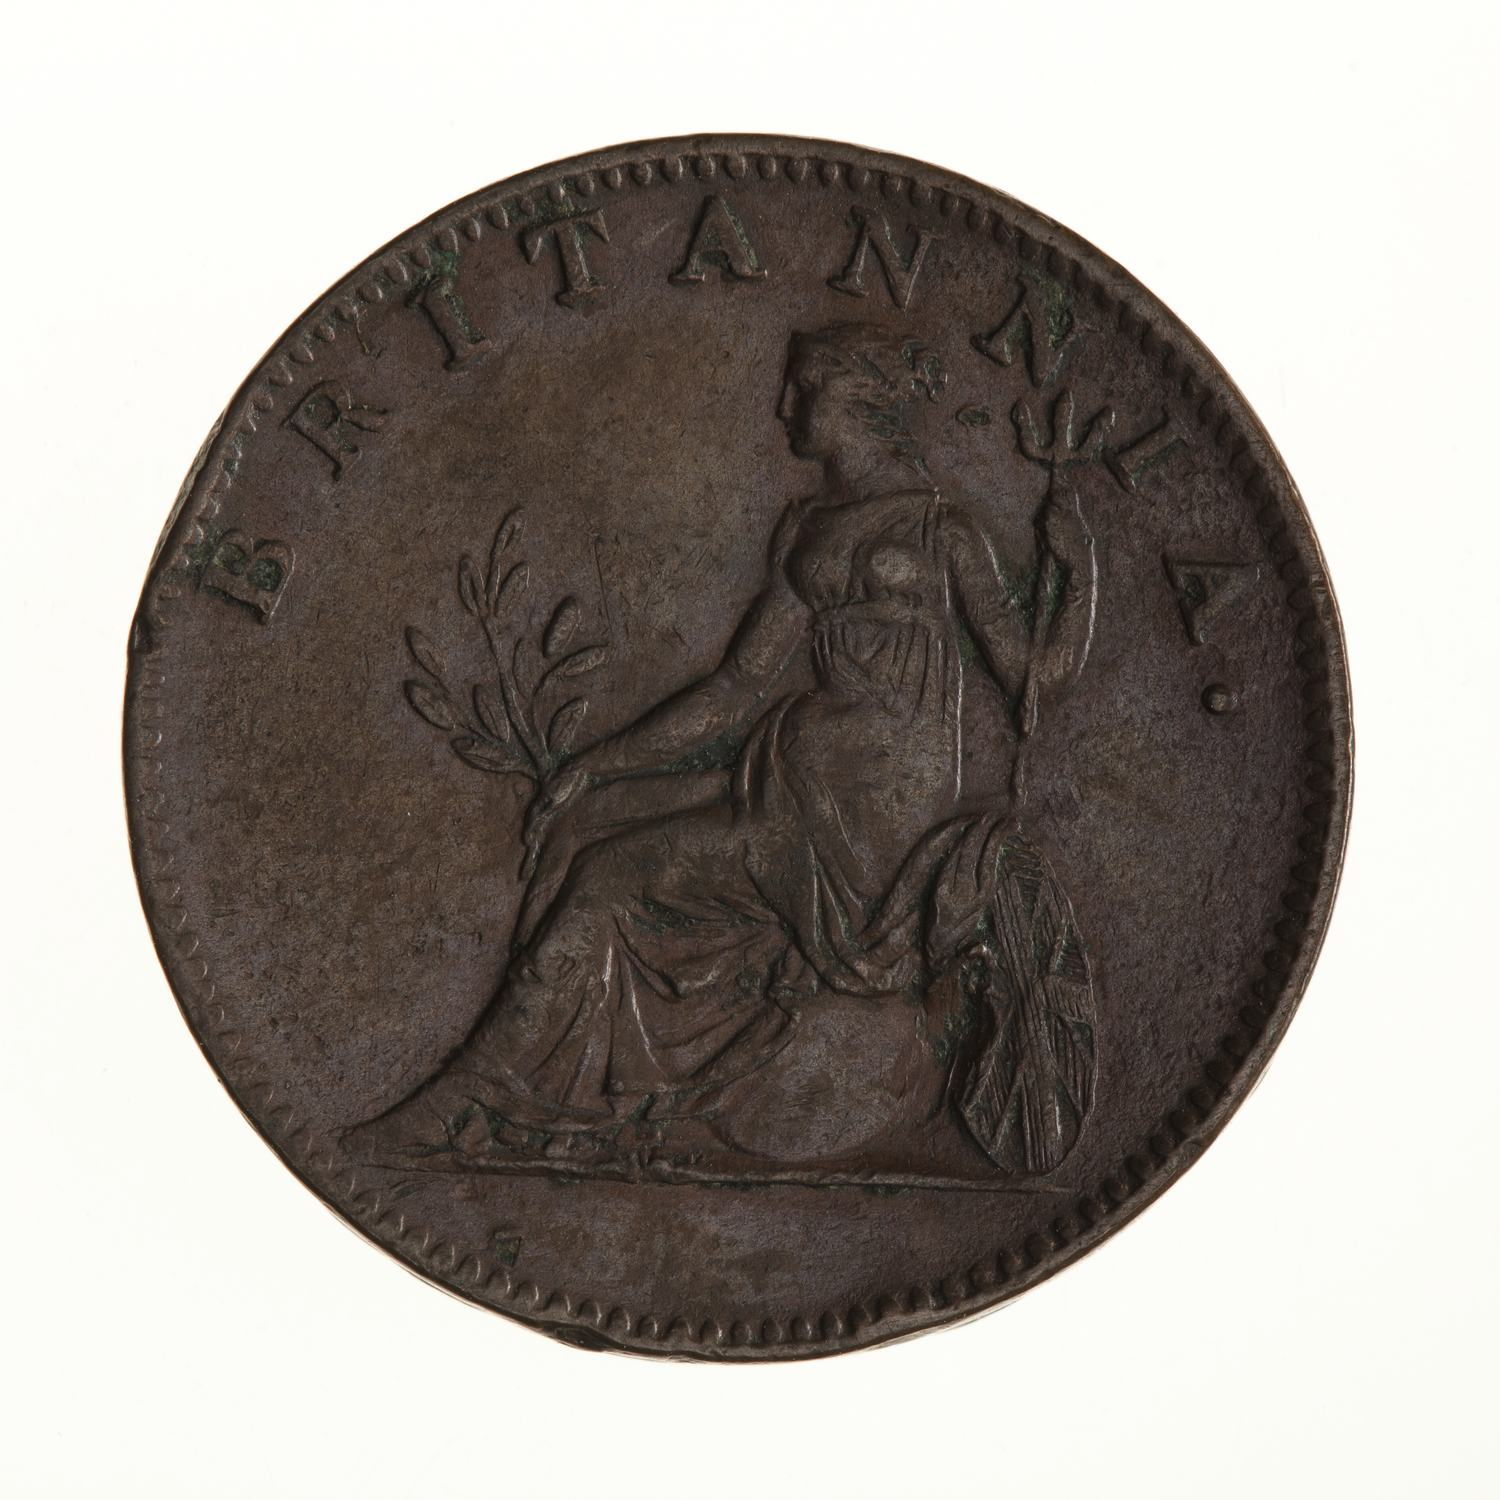 Two Lepta: Photo Coin - 2 Lepta, Ionian Islands, Greece, 1819